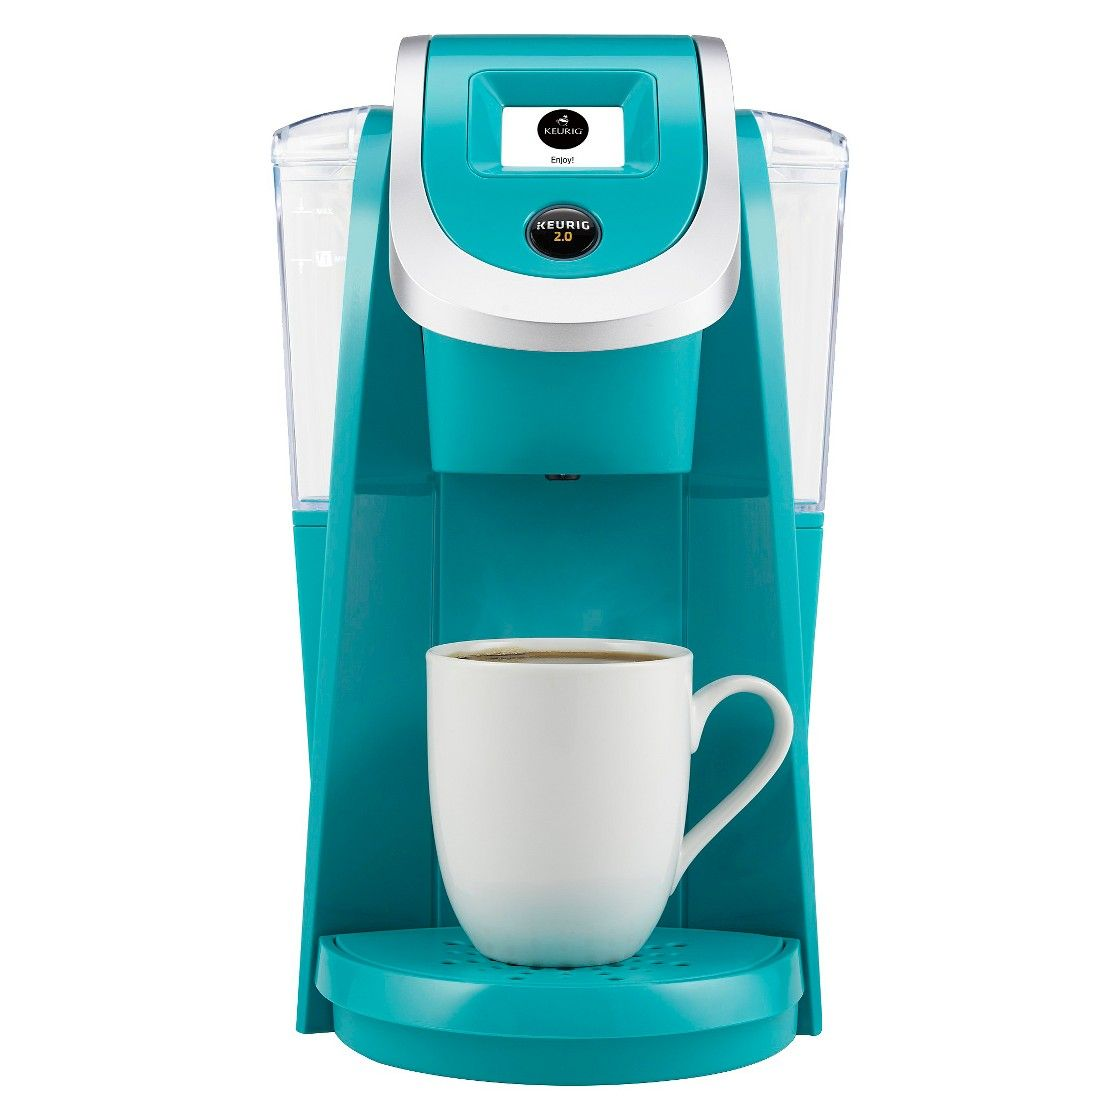 Keurig 2.0 K200 Coffee Maker Brewing System   coffee cups for home ...